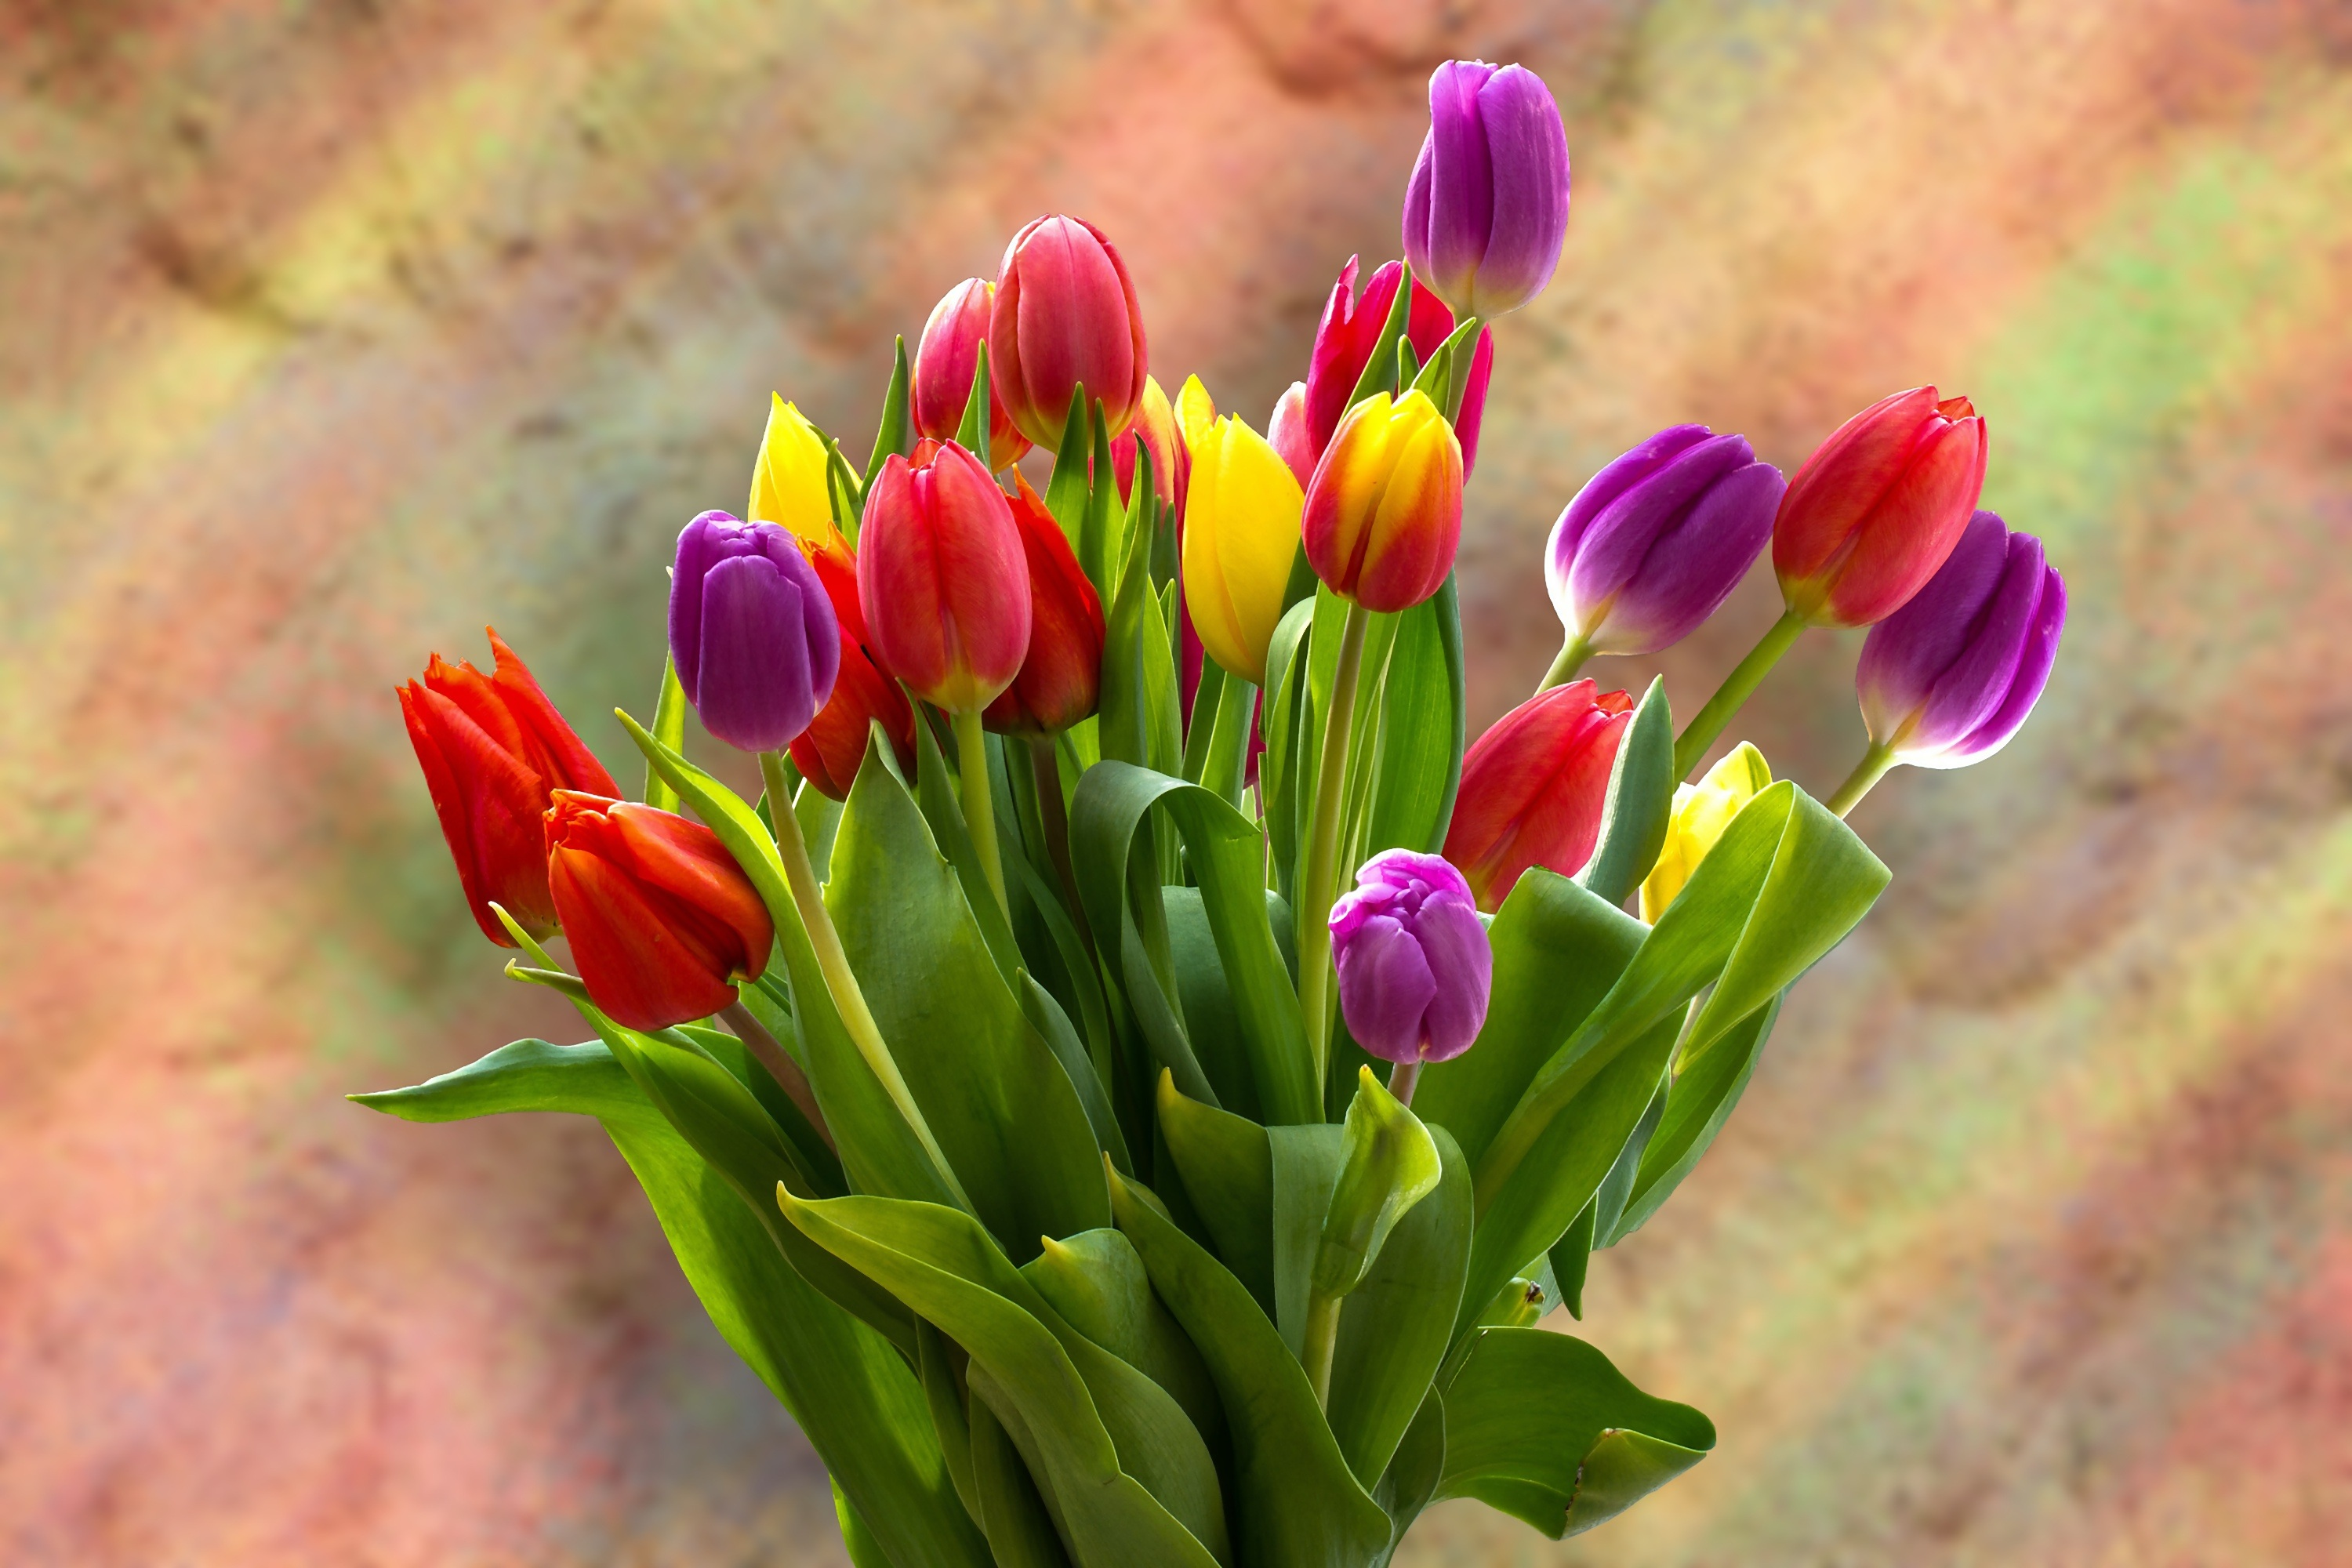 Tulip Bouquet 4k Wallpaper Spring Flowers Tulips Blossom Bloom Bright Green Leaves Red Yellow Flowers 2664